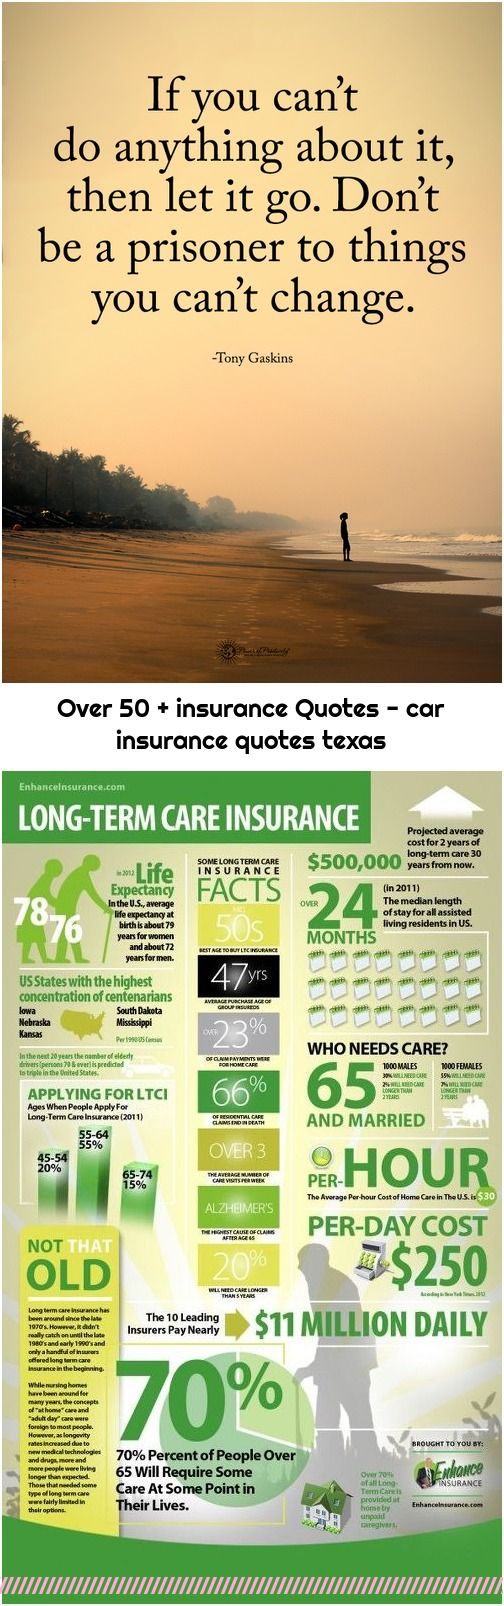 Over 50 Insurance Quotes Car Insurance Quotes Texas In 2020